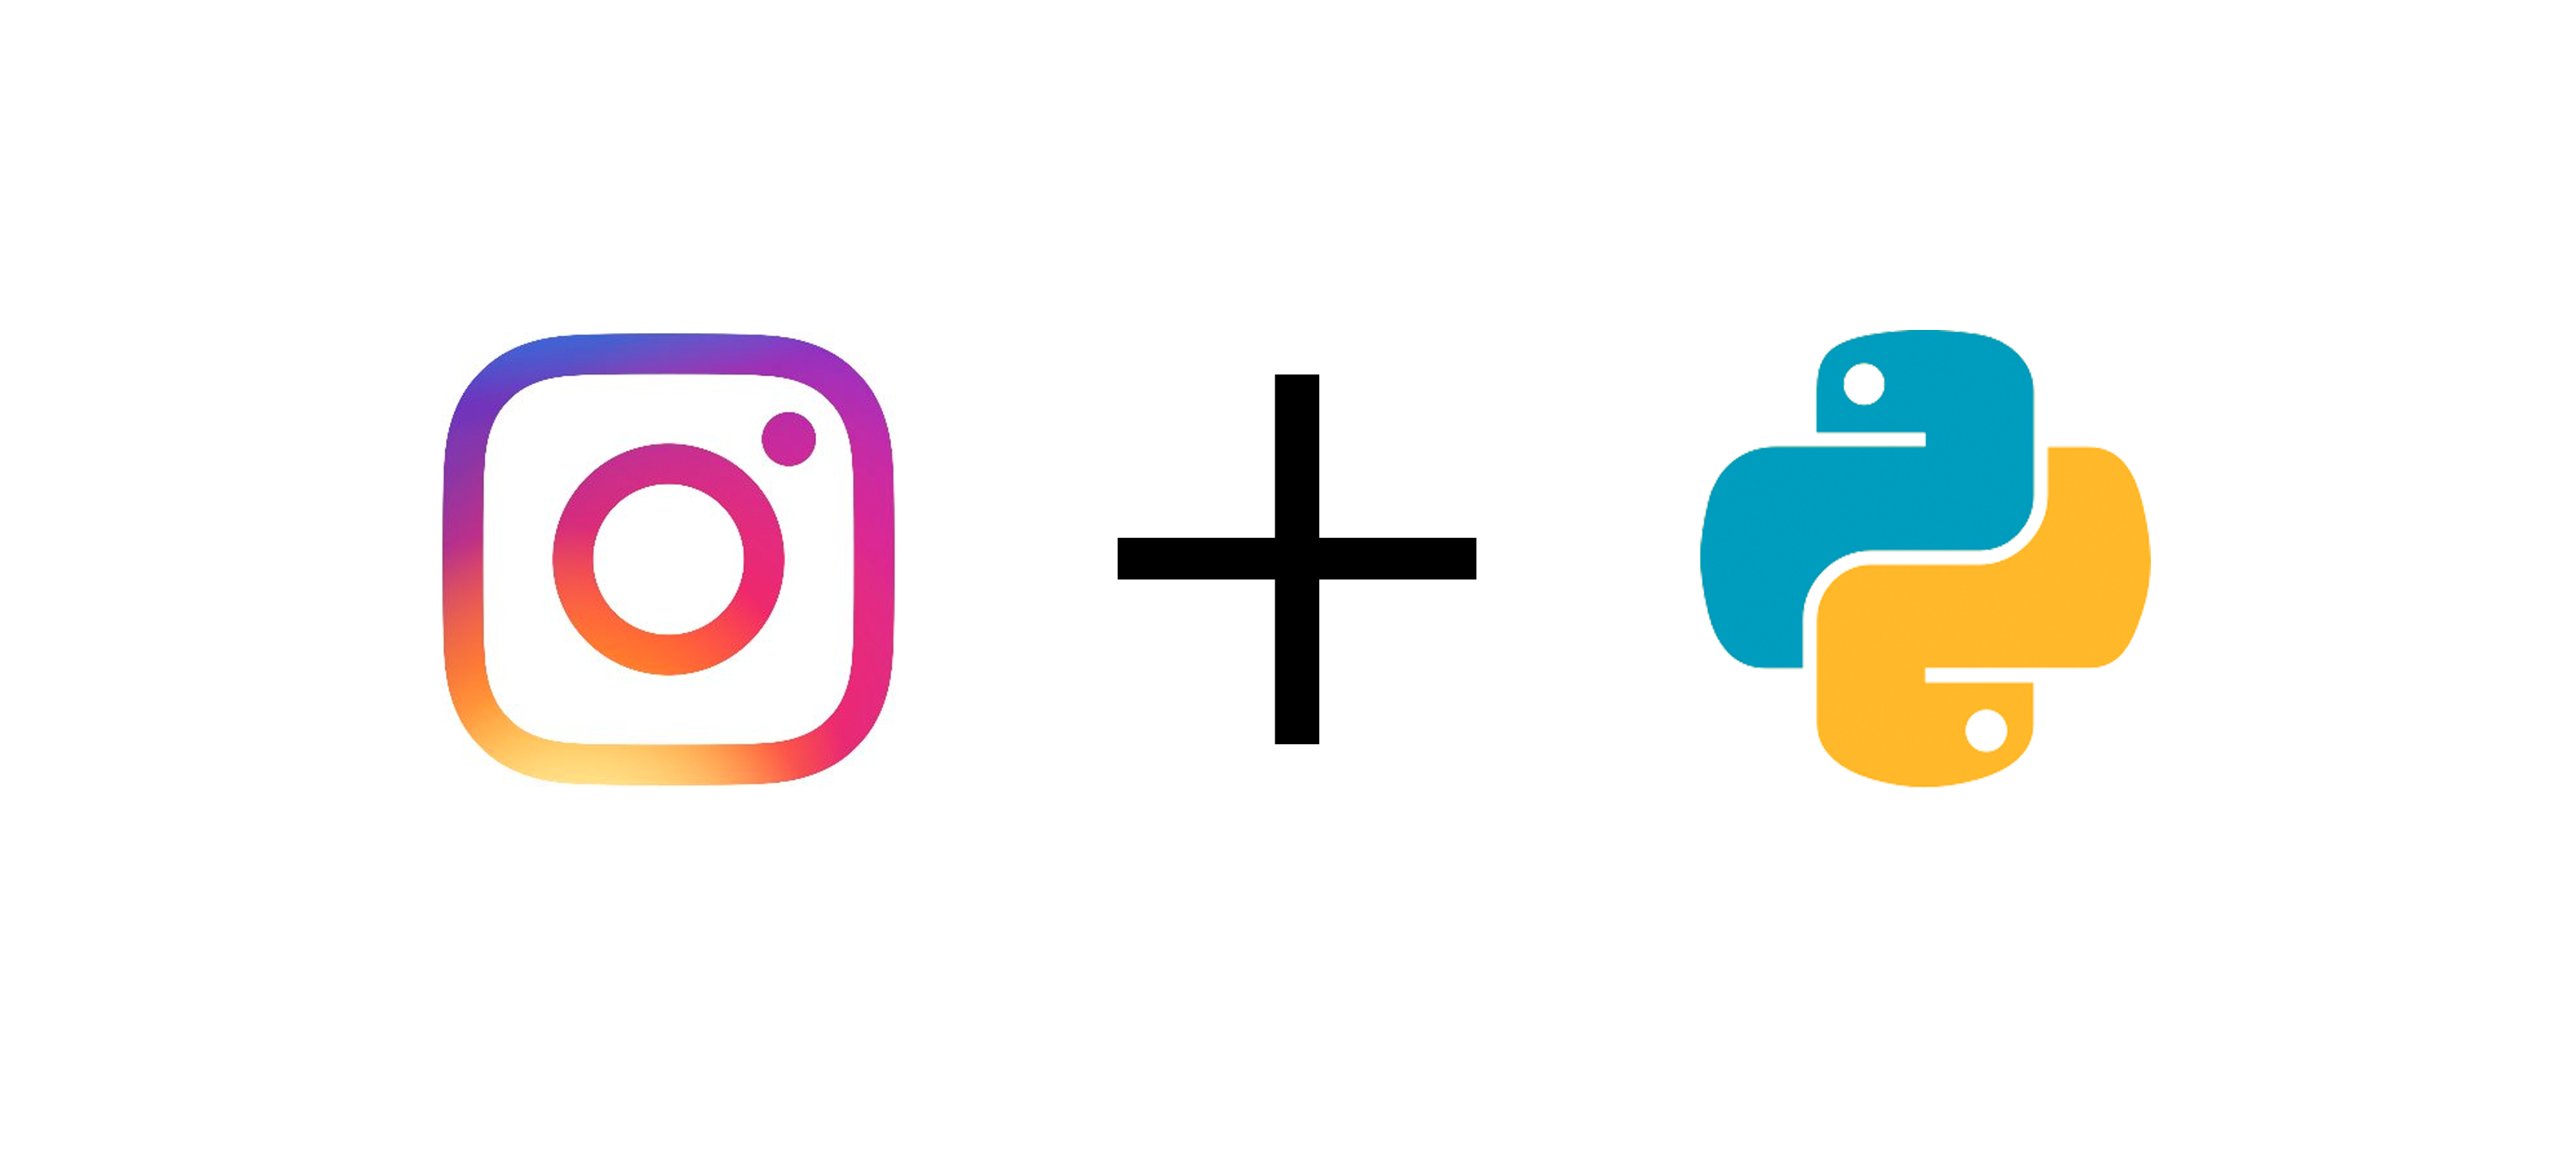 Instagram and Python logos